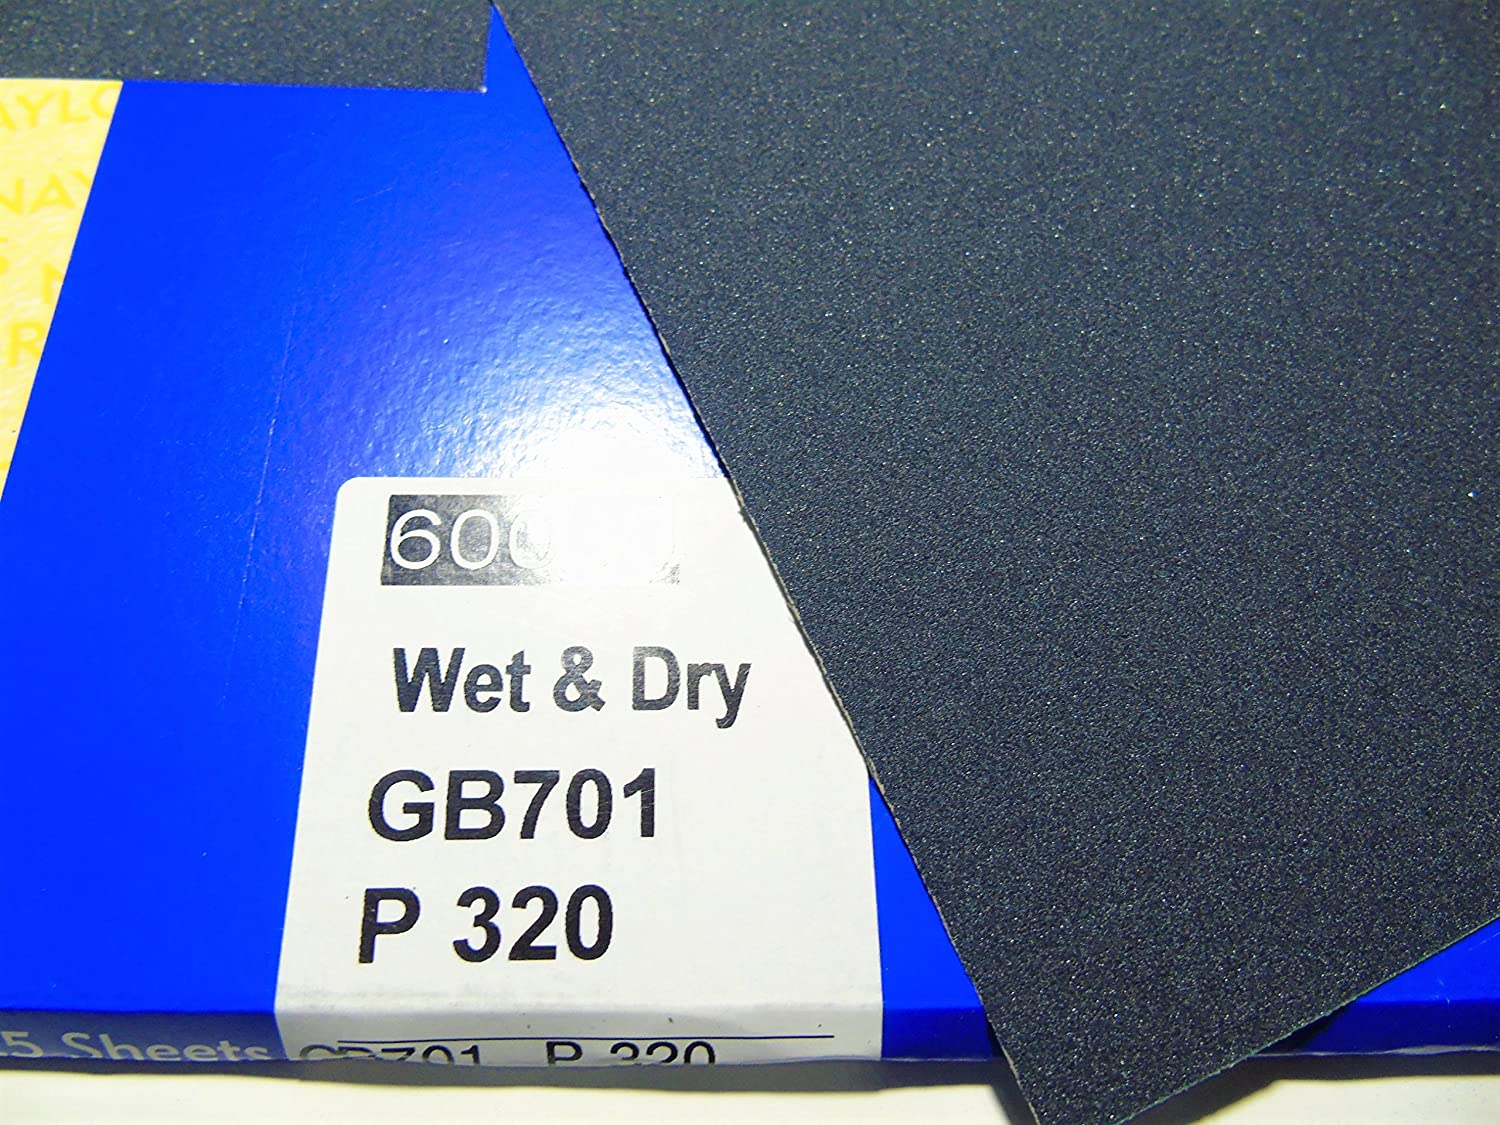 10 x Grit 320 Wet and dry Sandpaper Sheets waterproof Abrasive Medium Fine Quality Silicon Carbide